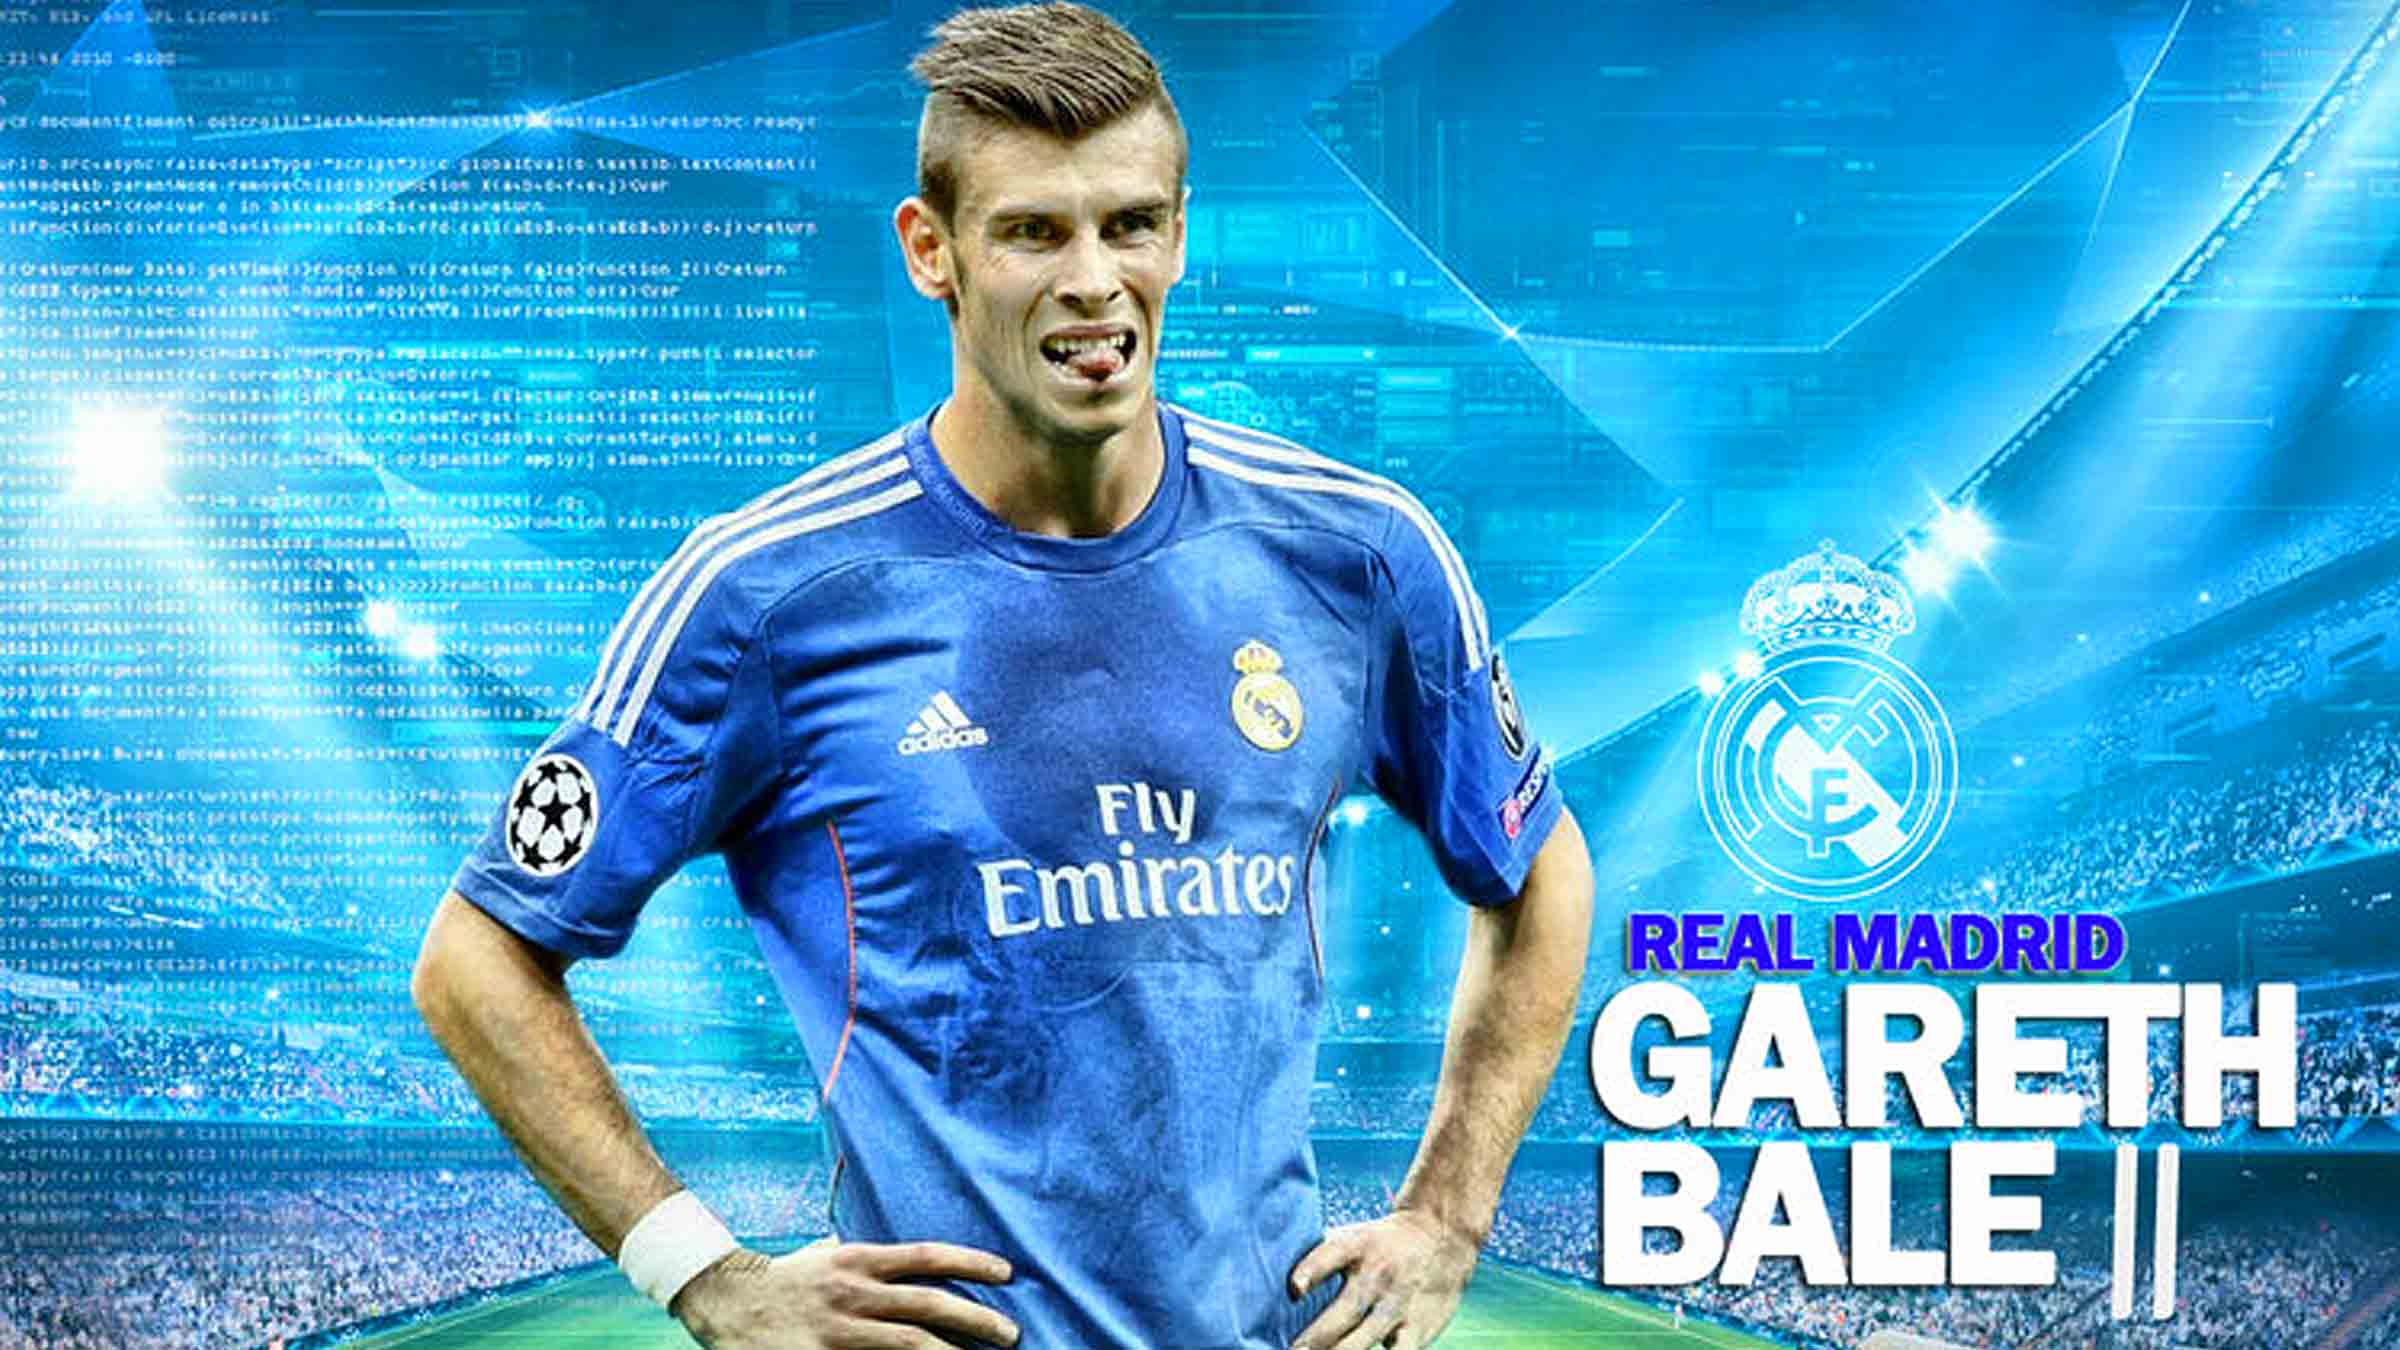 Bale wallpapers high resolution and quality download gareth bale hd desktop voltagebd Images